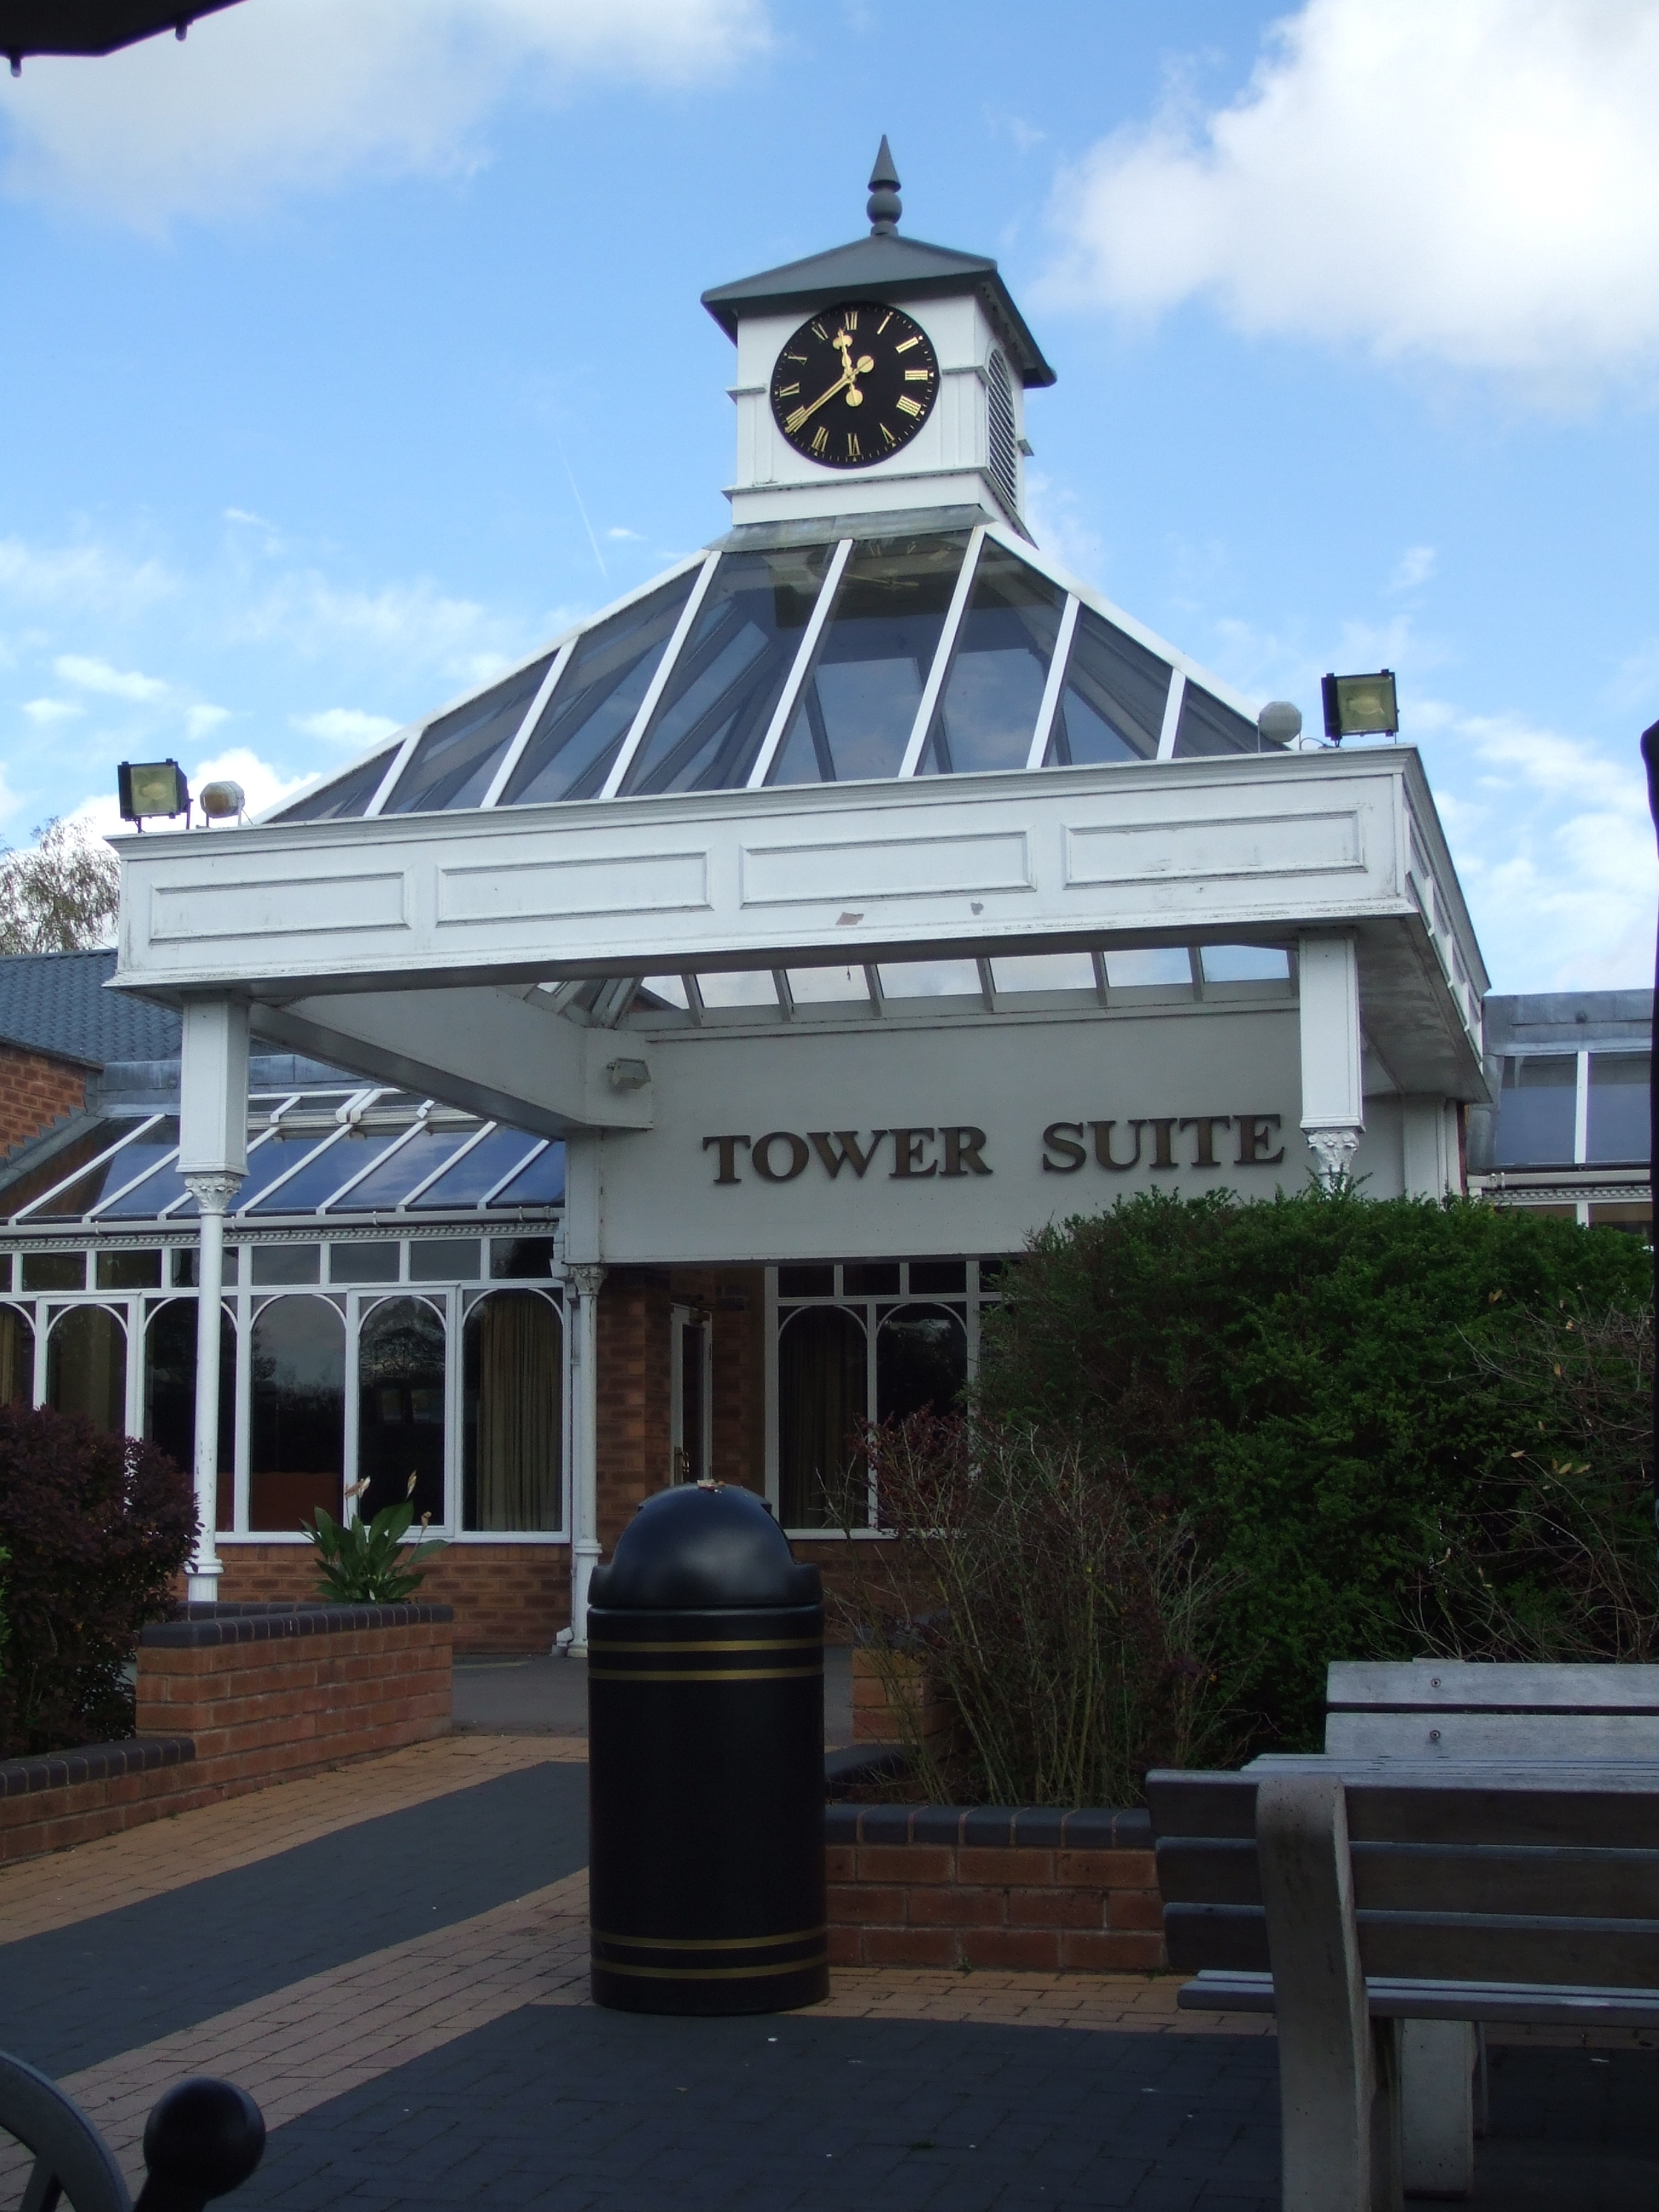 Clock towers for ventilation